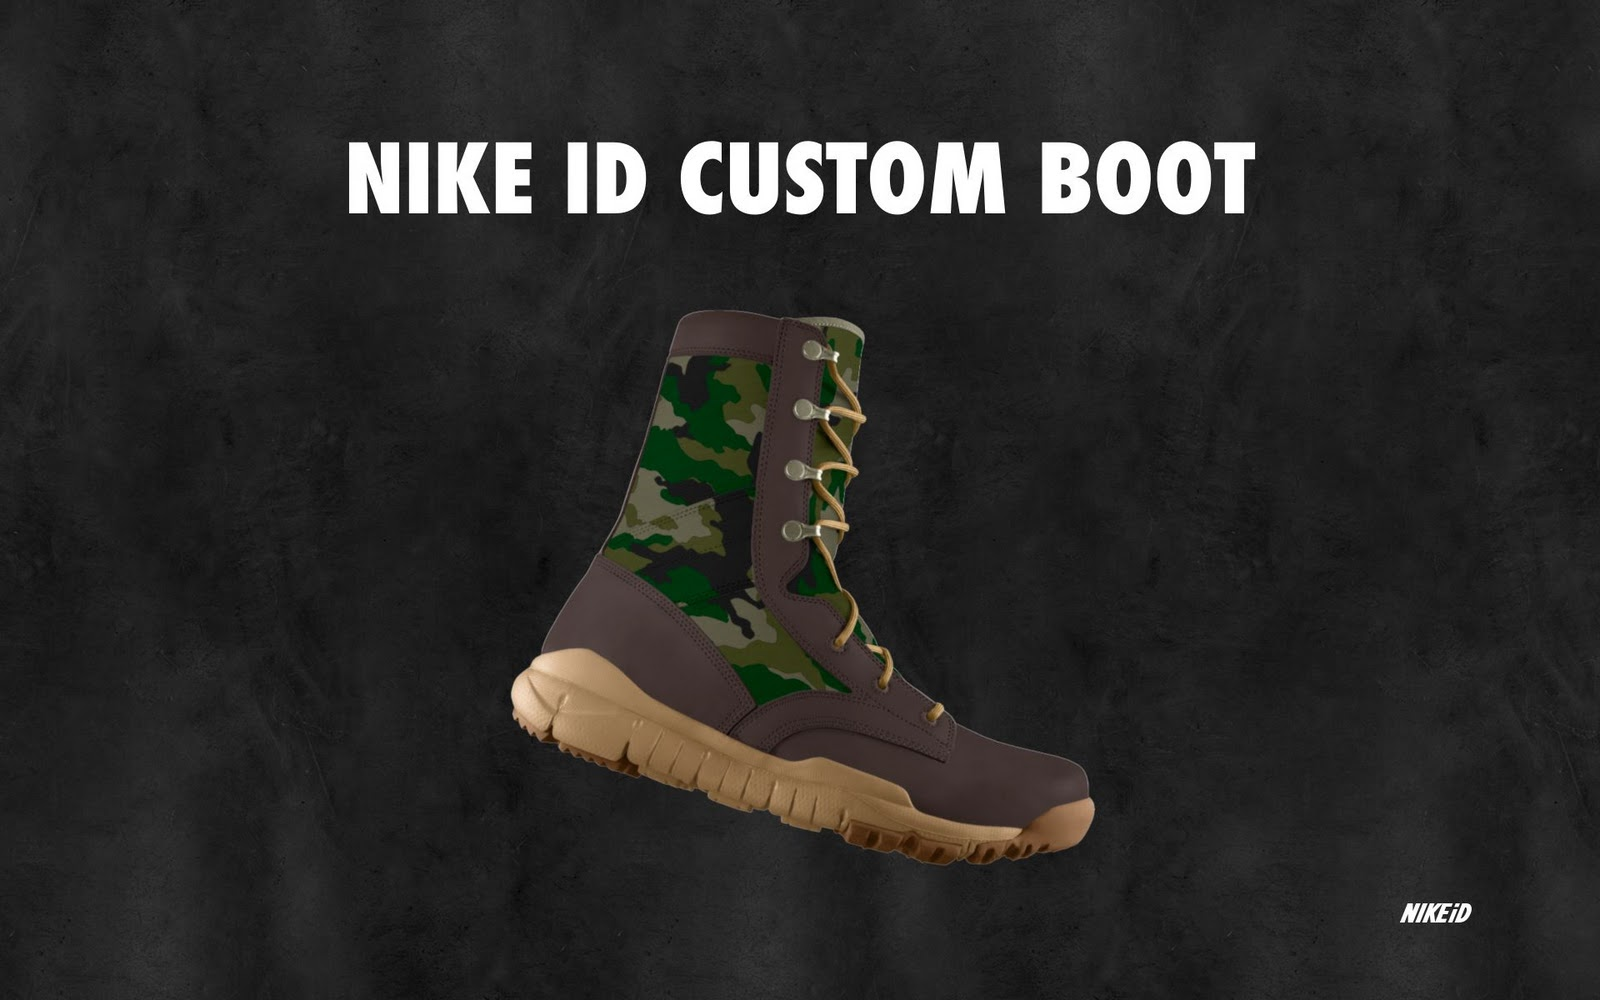 Tactical Gear and Military Clothing News   DIY Boot Design  Nike ... a62f8e0b9